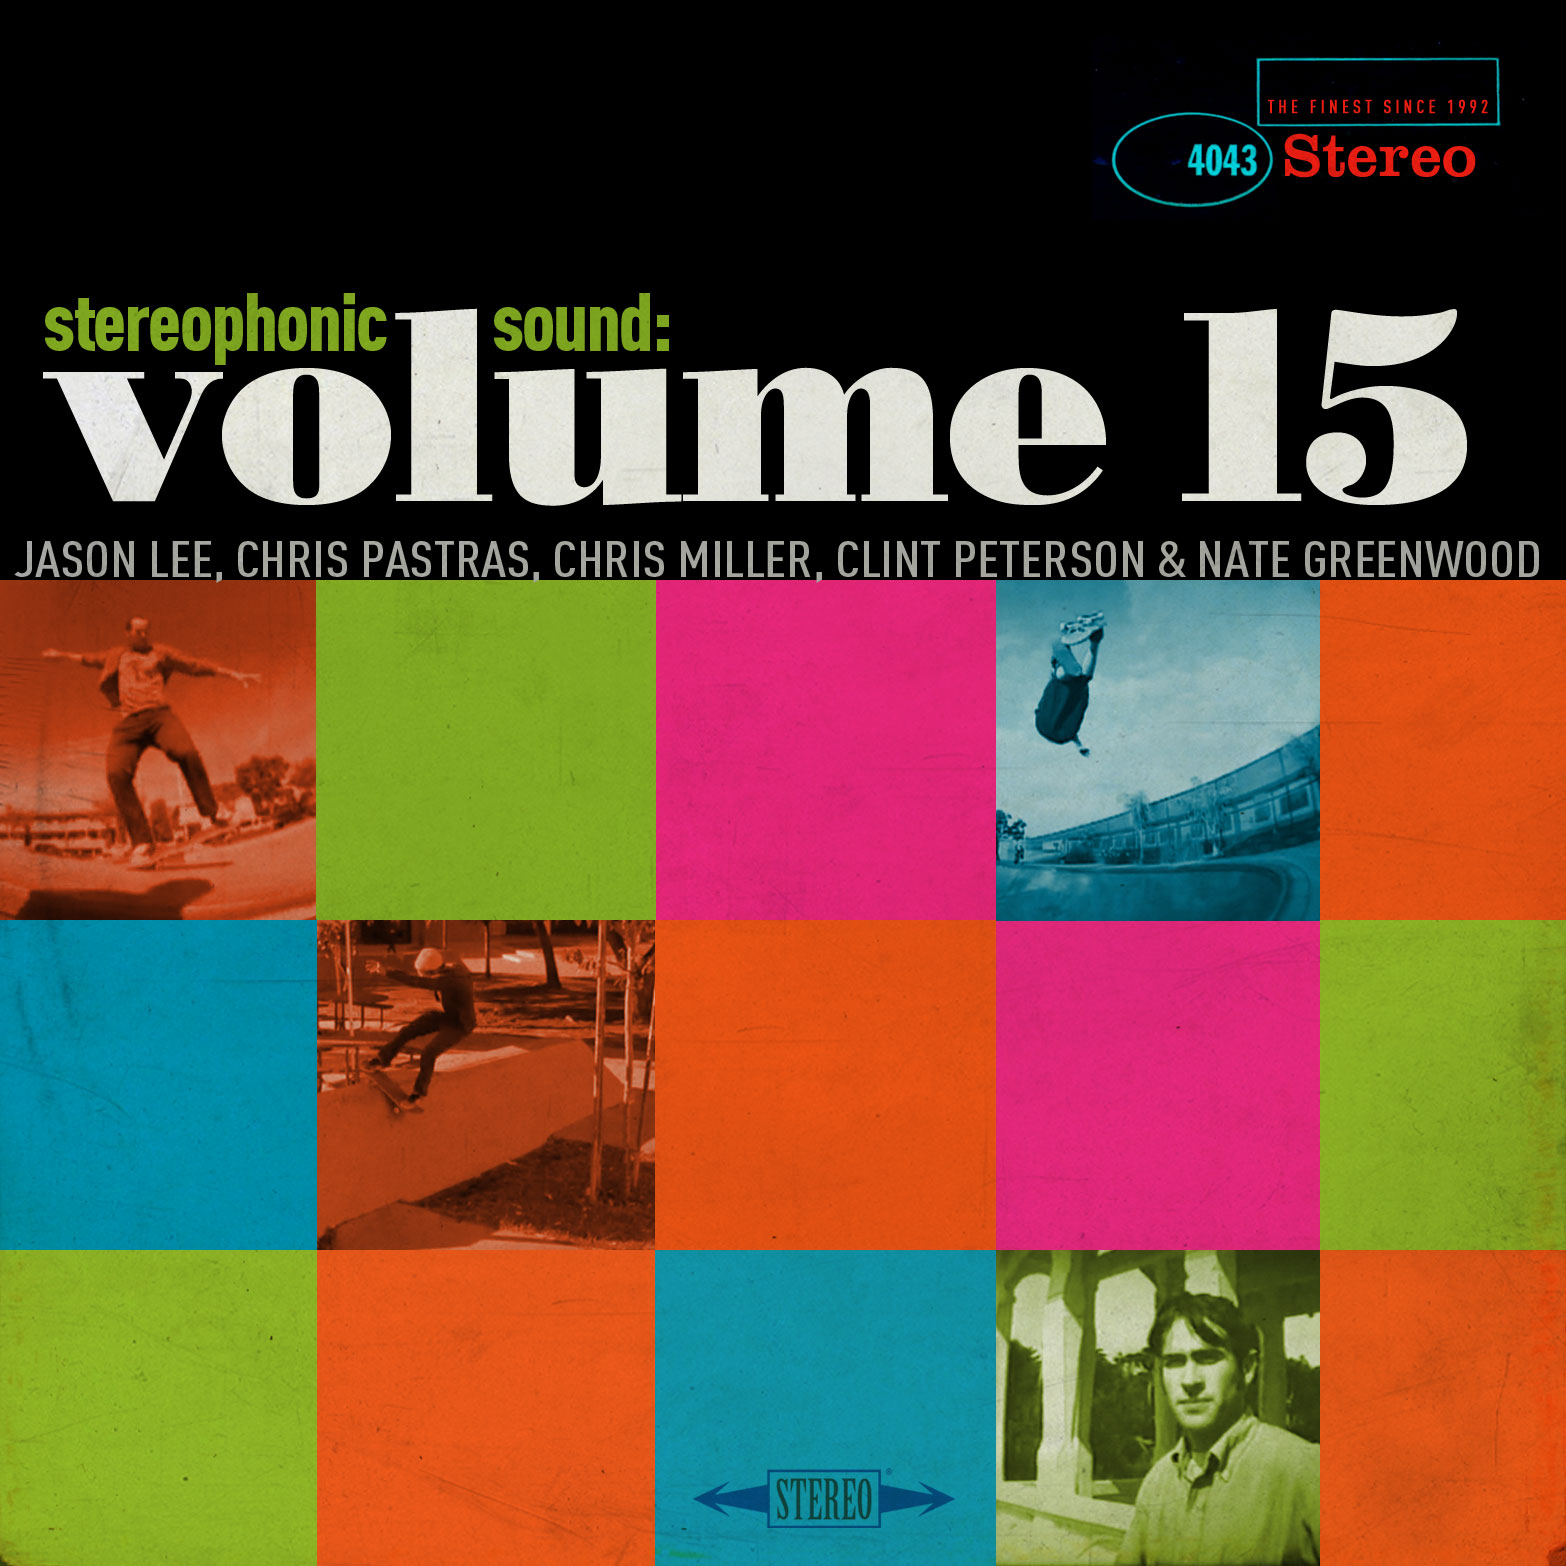 Stereophonic-sound-volume-15.jpg